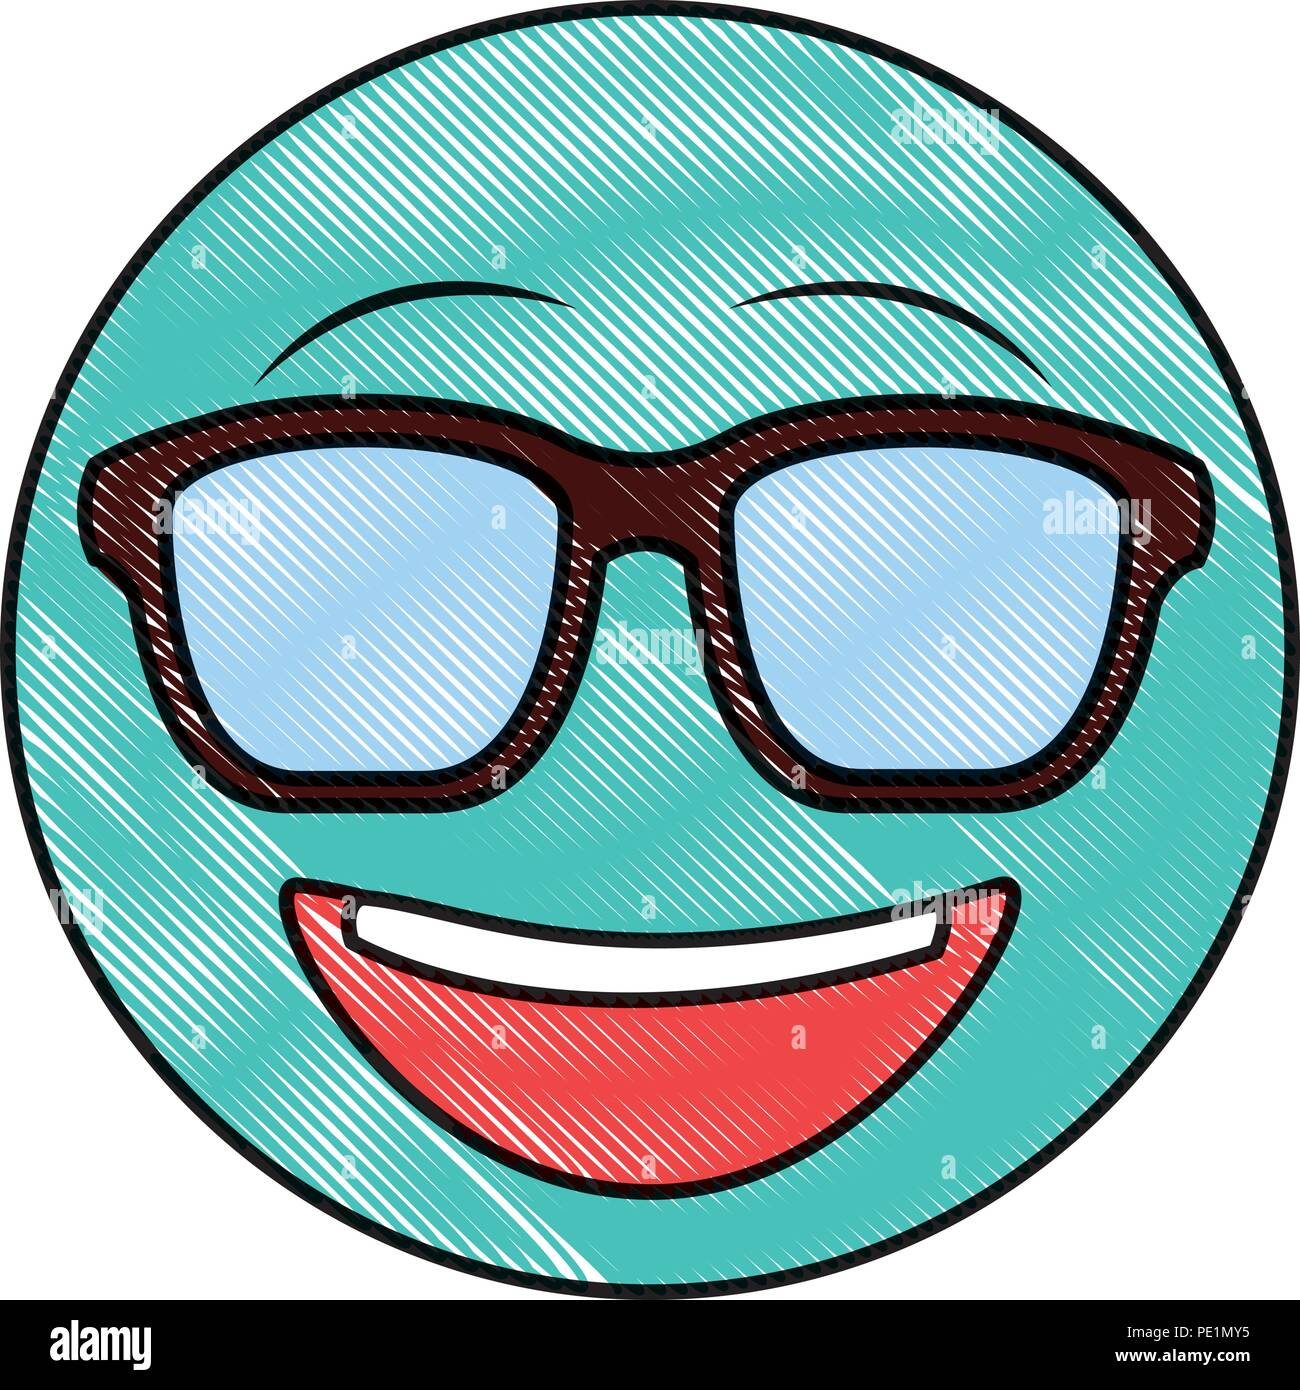 91a7d38375e7 big smiley emoticon with sunglasses drawing color image Stock Vector ...